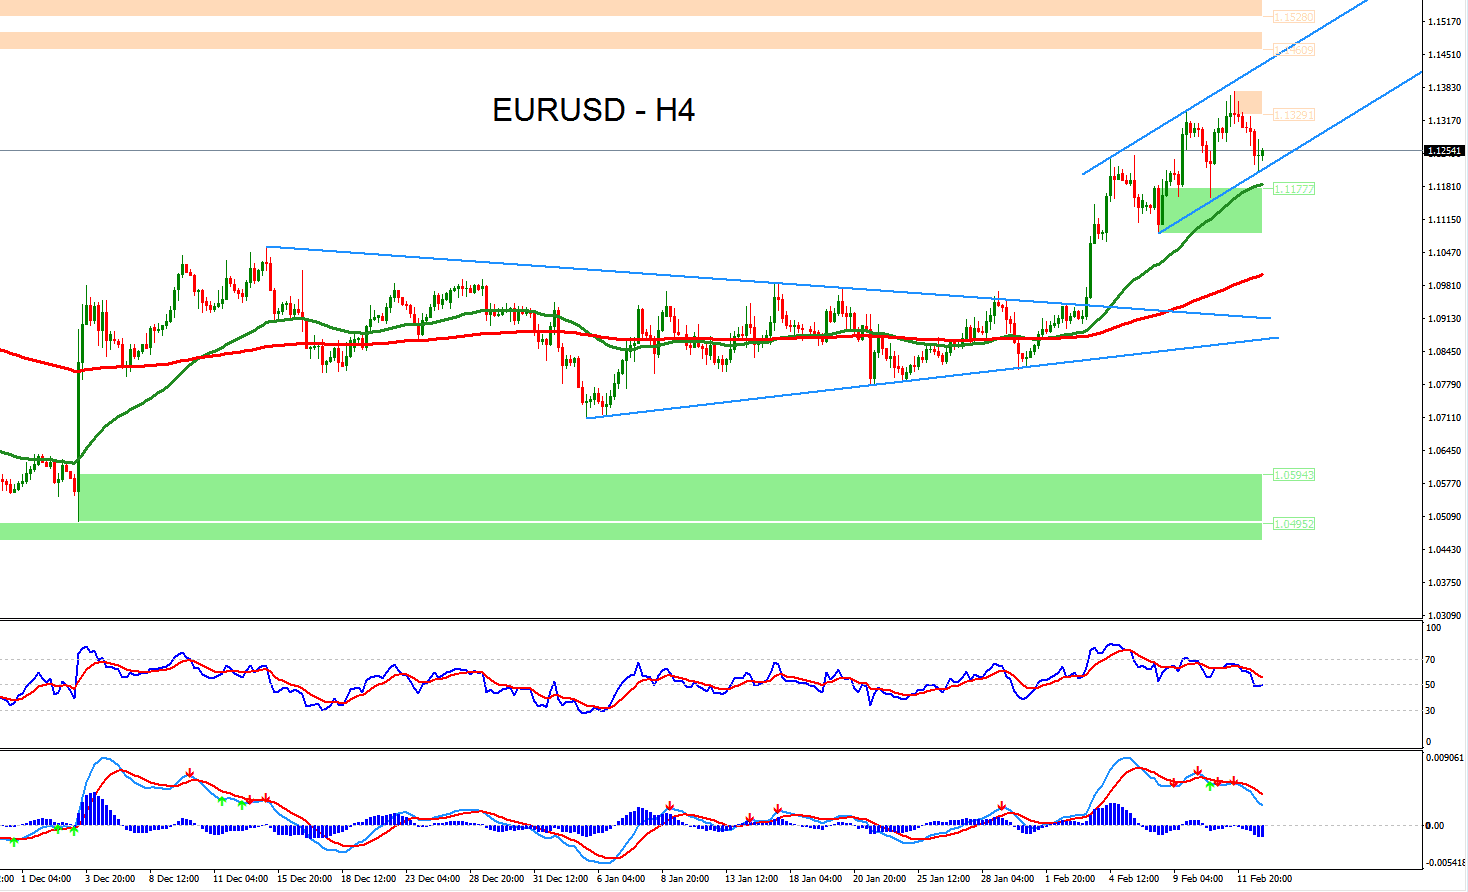 ... Technical Analysis of EURUSD for May 11, 2015 | Forex Signals Market